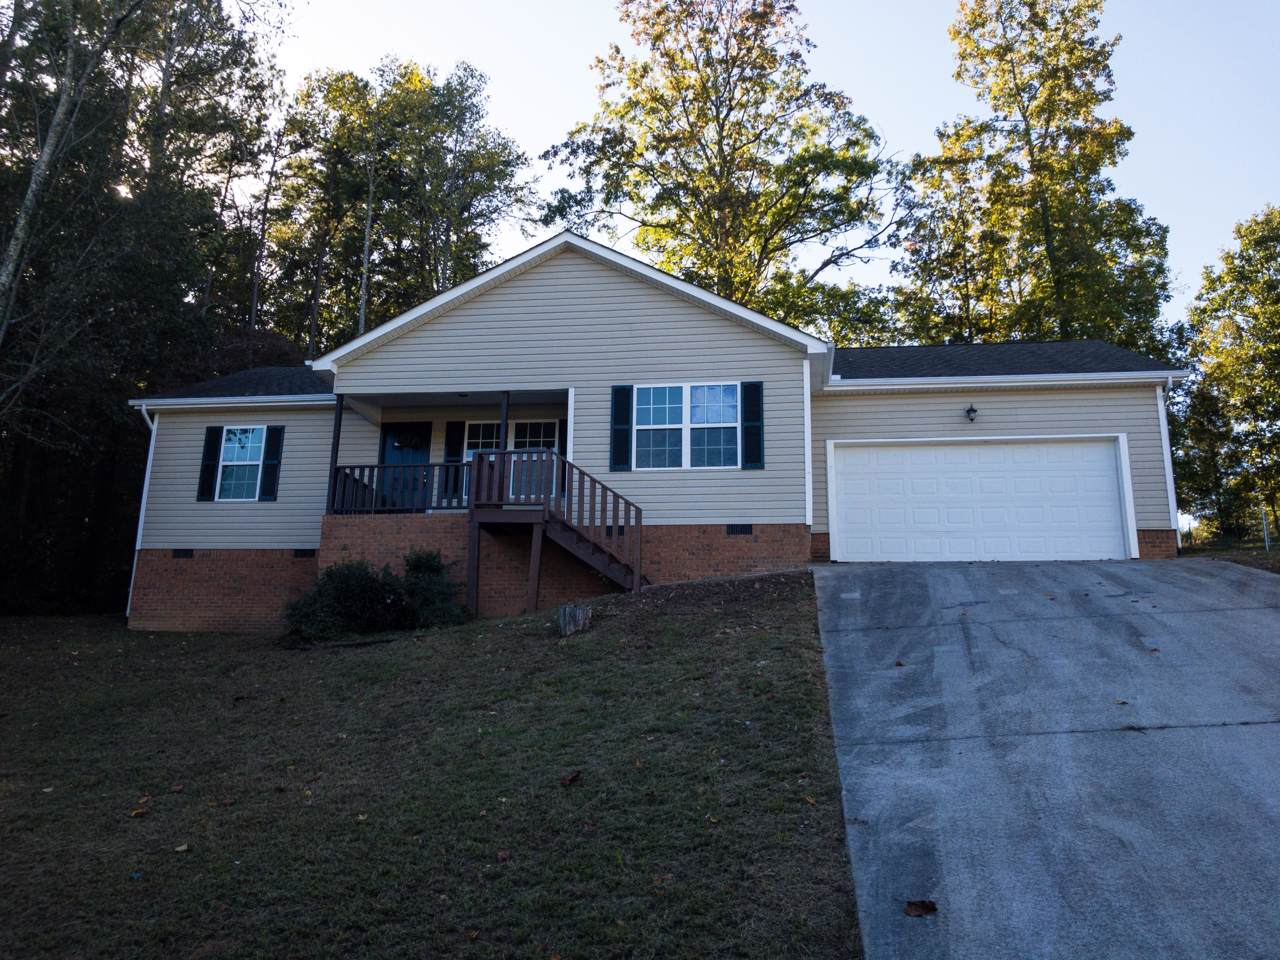 317 Windsong Drive Dr - Photo 1